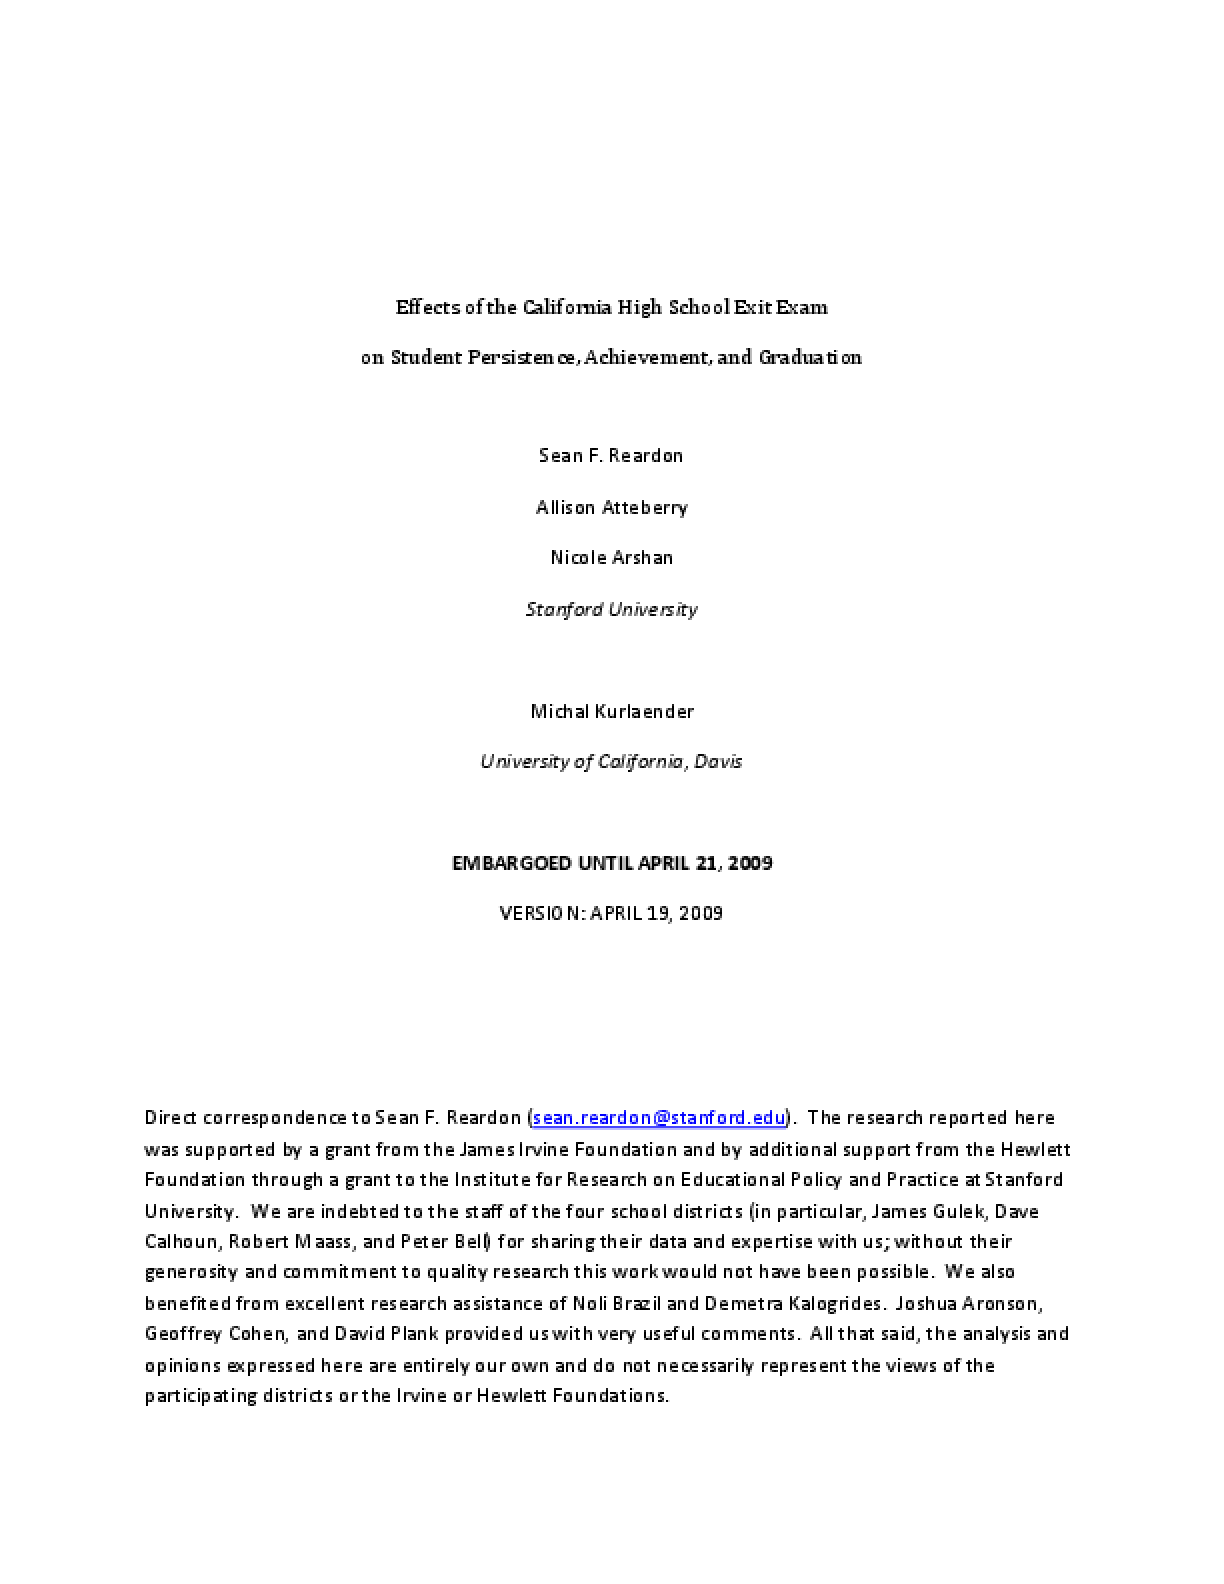 Effects of the California High School Exit Exam on Student Persistence, Achievement, and Graduation